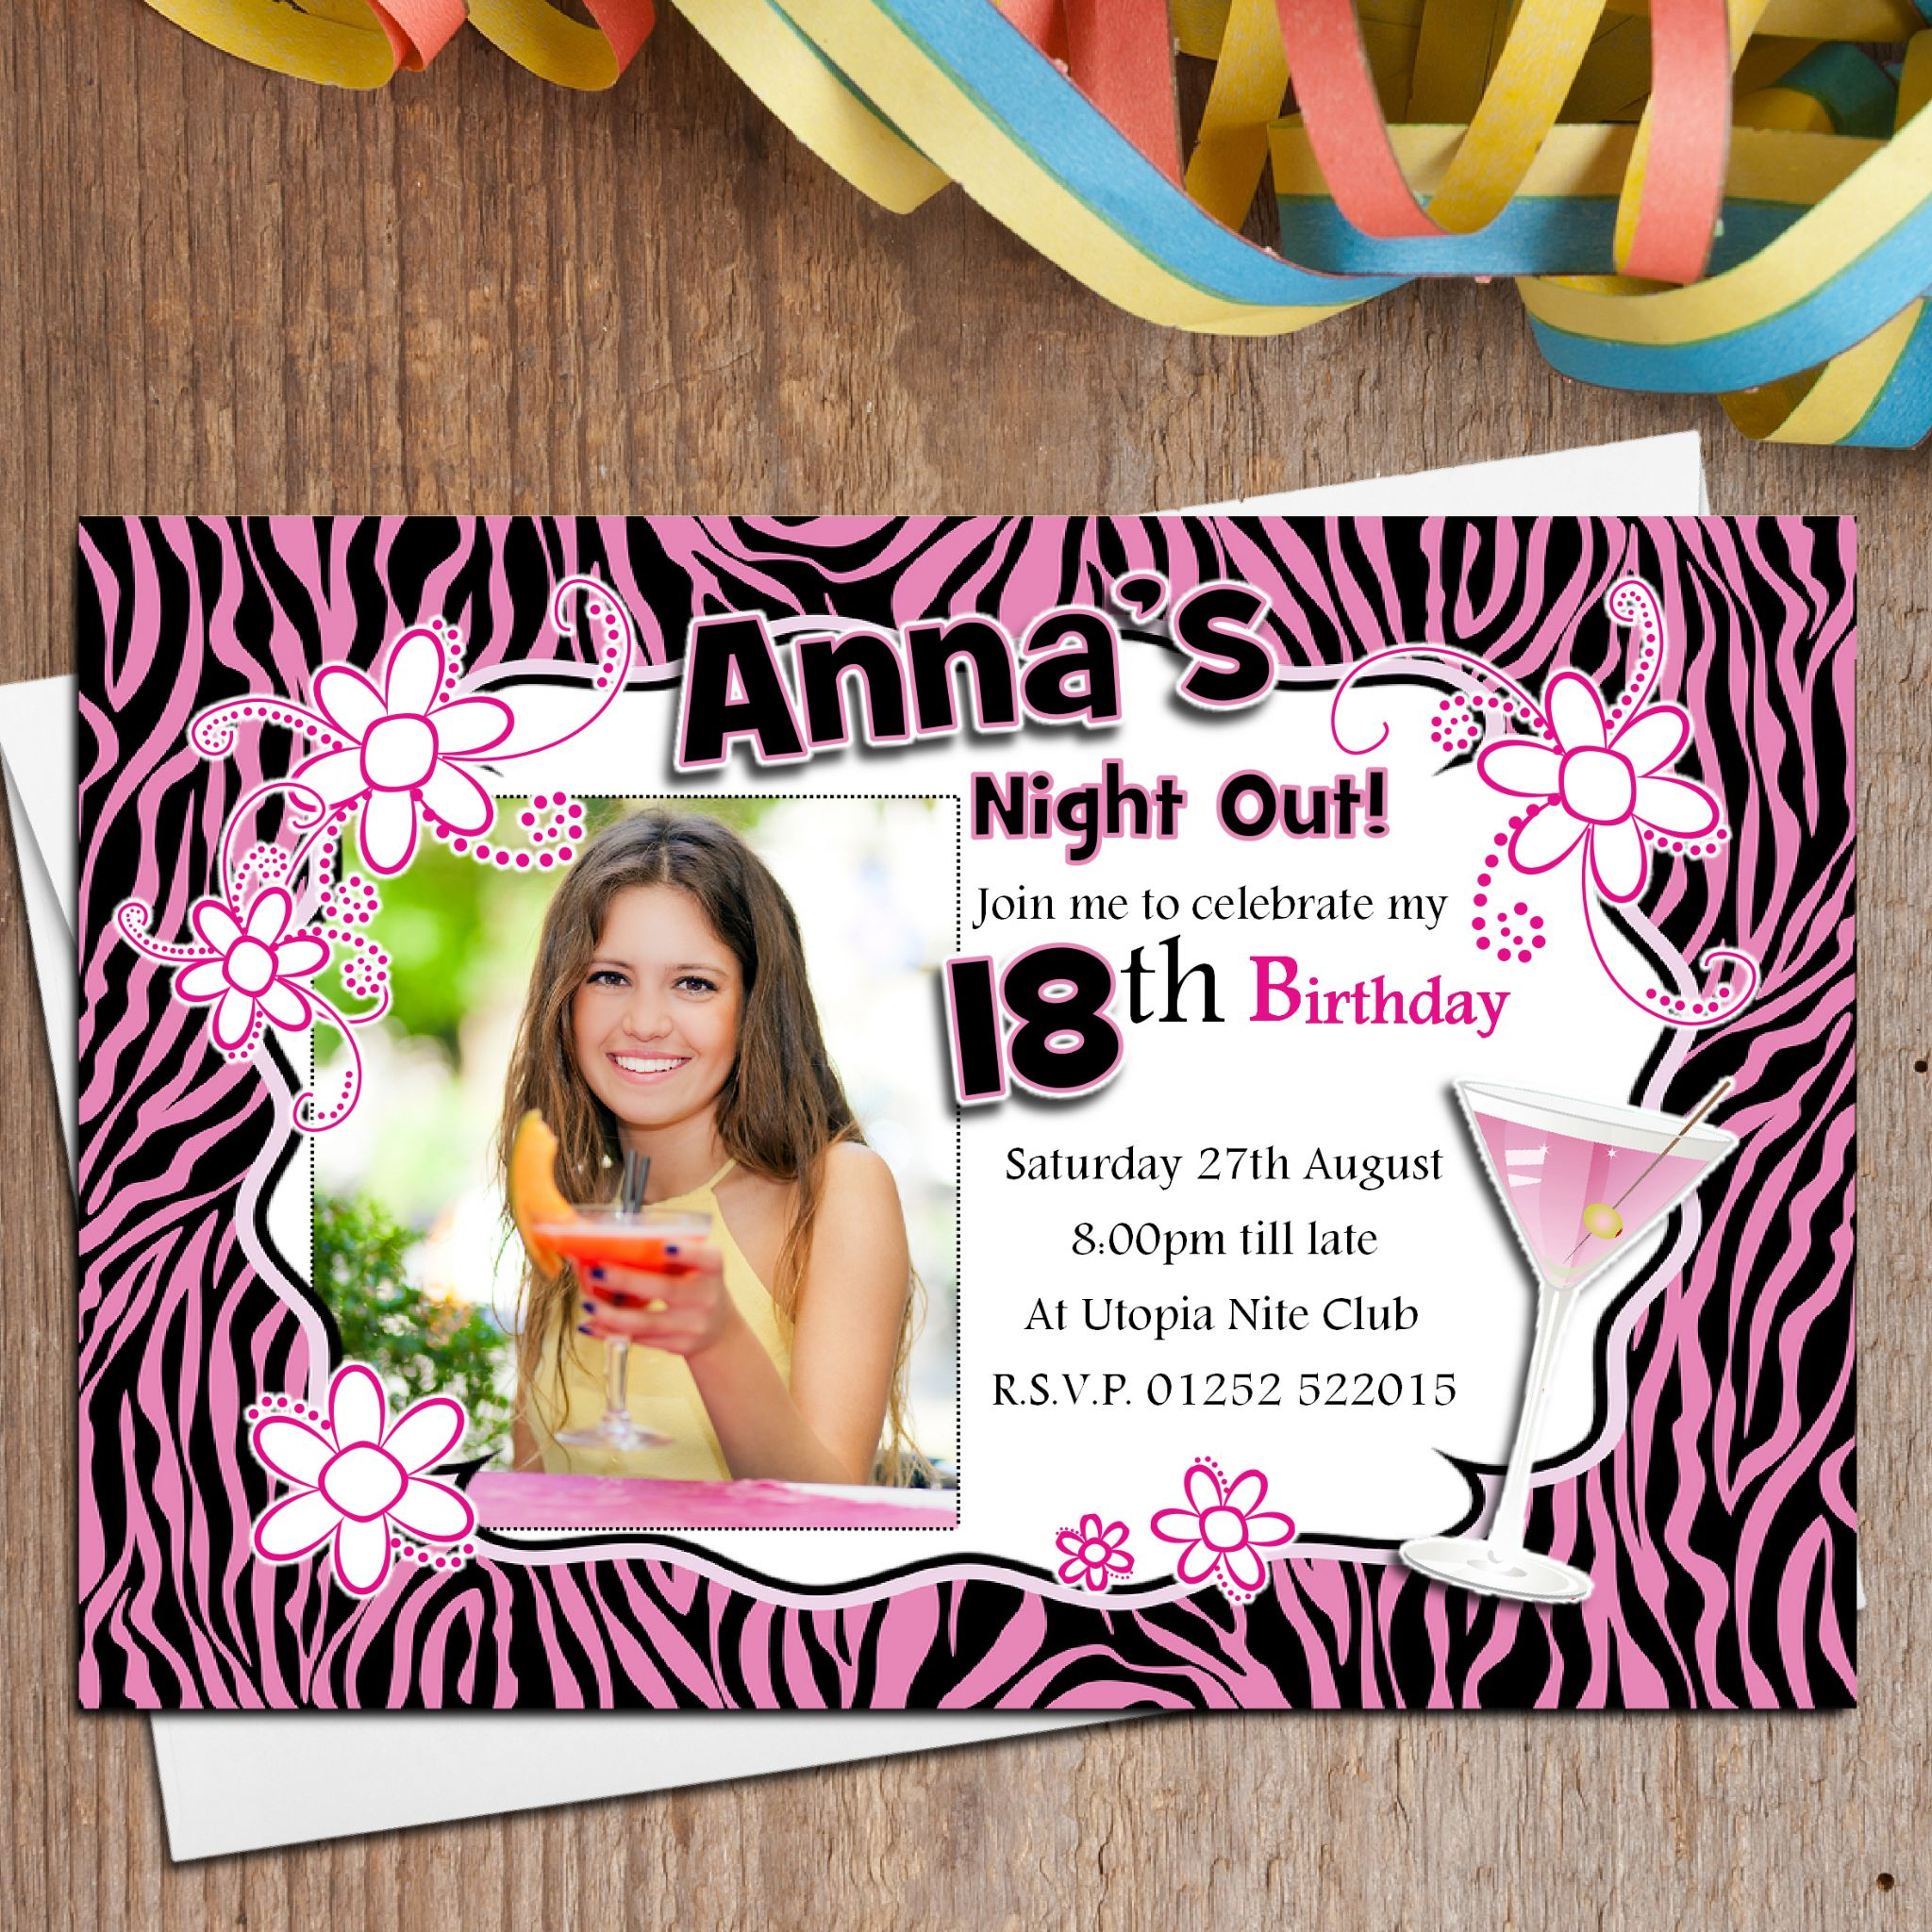 10 Personalised Pink Glamour Birthday Party PHOTO Invitations N150